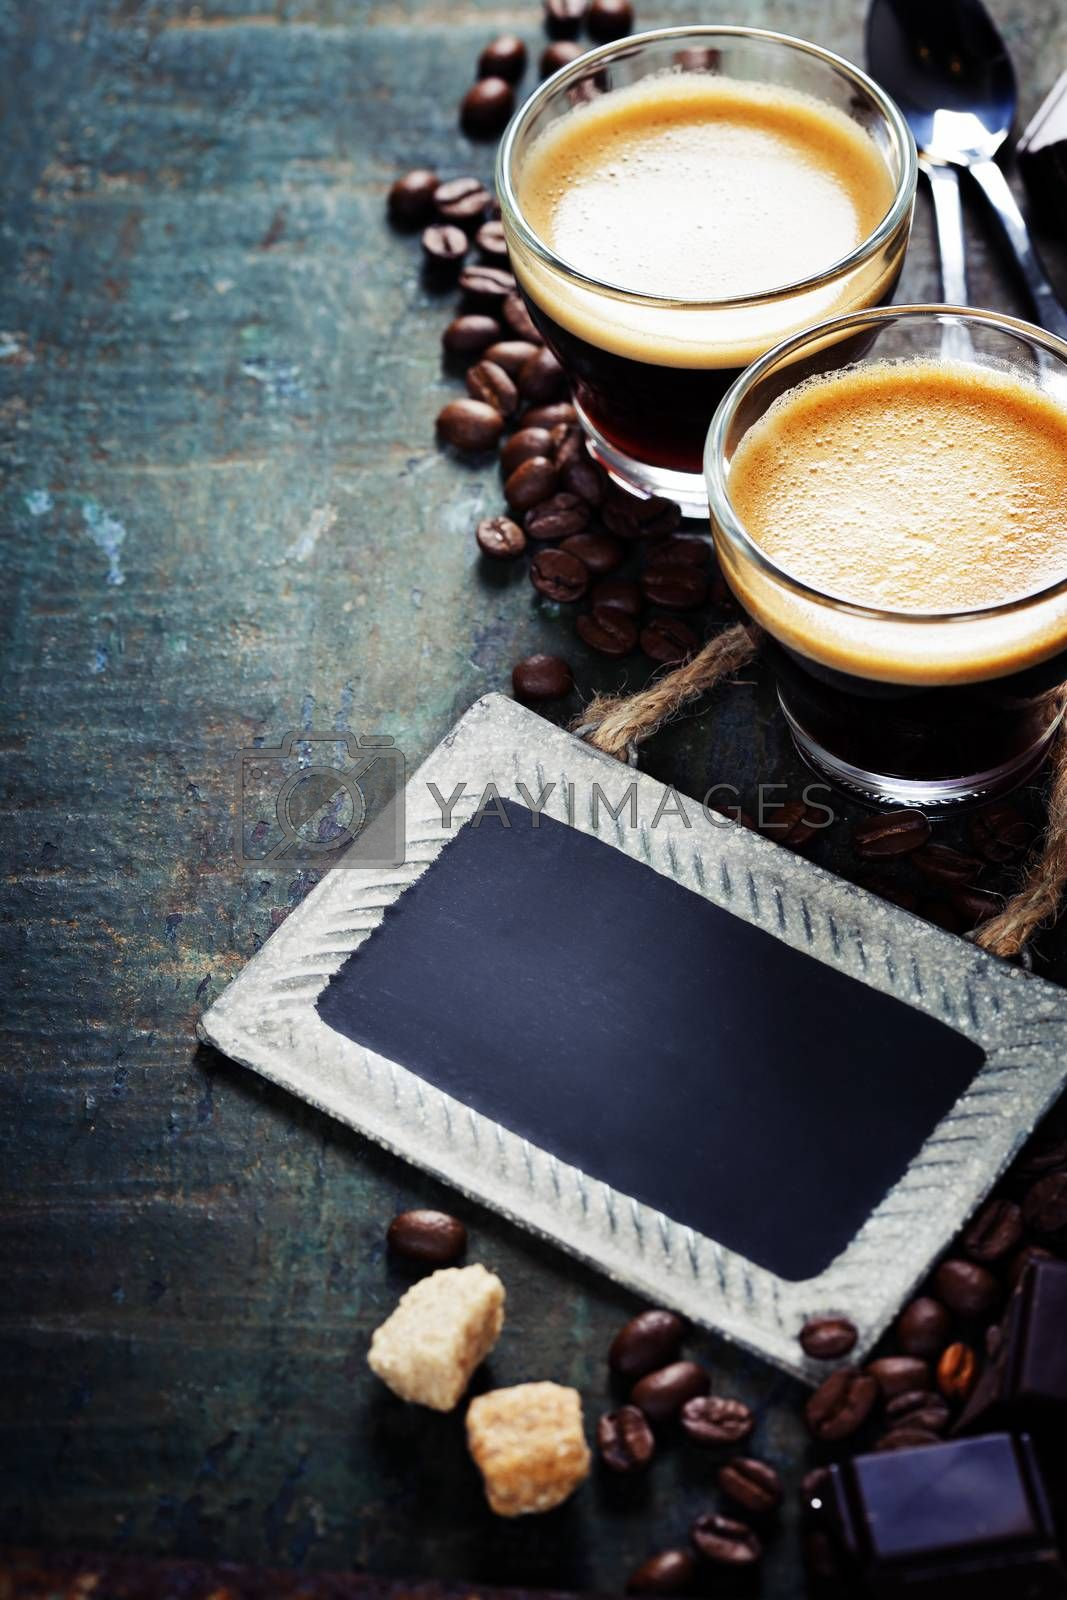 Royalty free image of Coffee by klenova